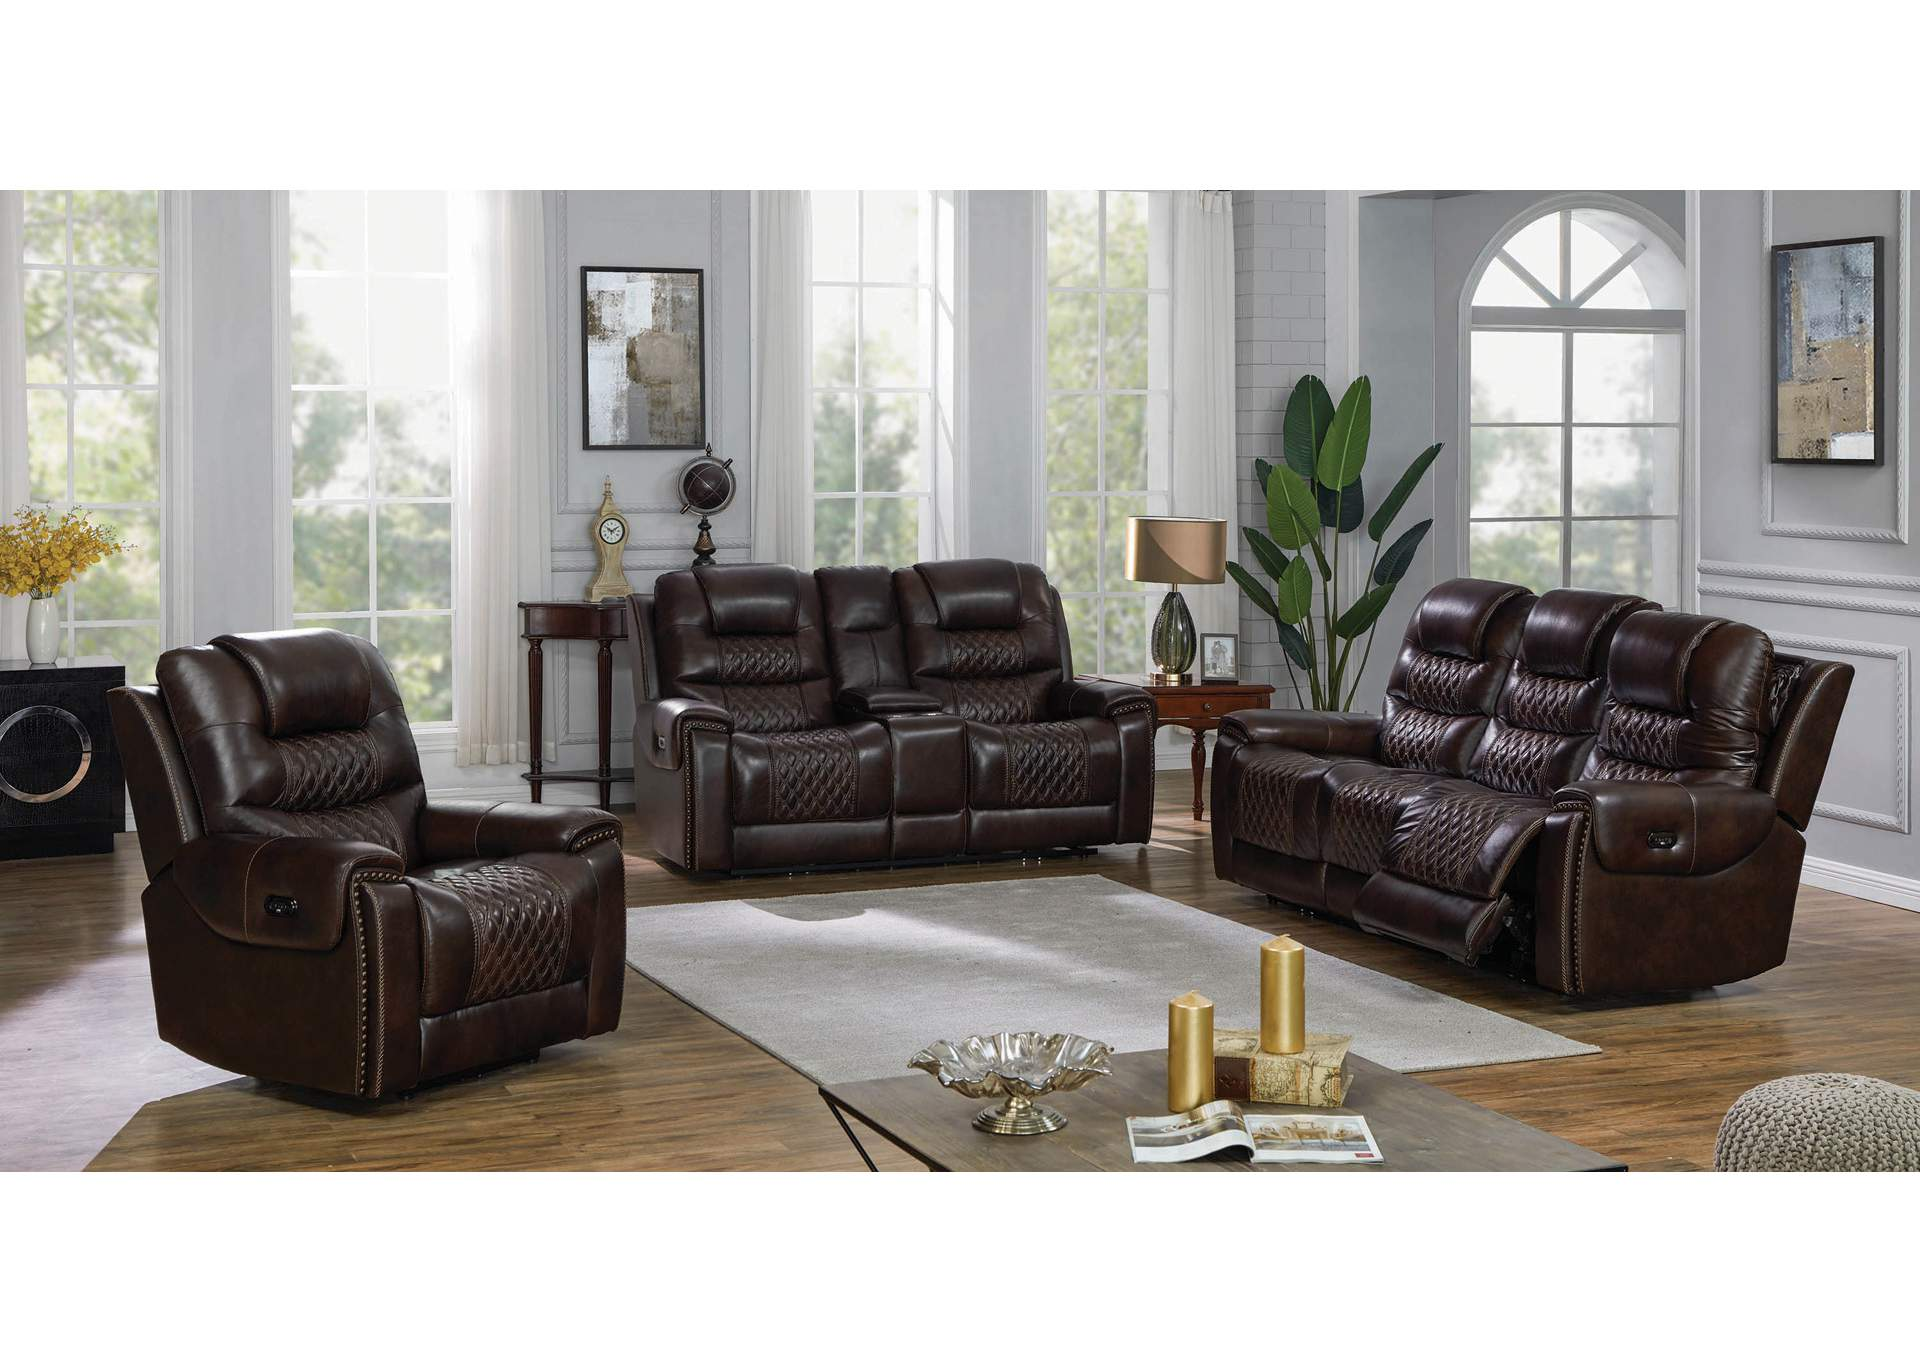 North Cultured Pearl 3 Piece Power Reclining Living Room Set Big Box Furniture Discount Furniture Stores In Miami Florida